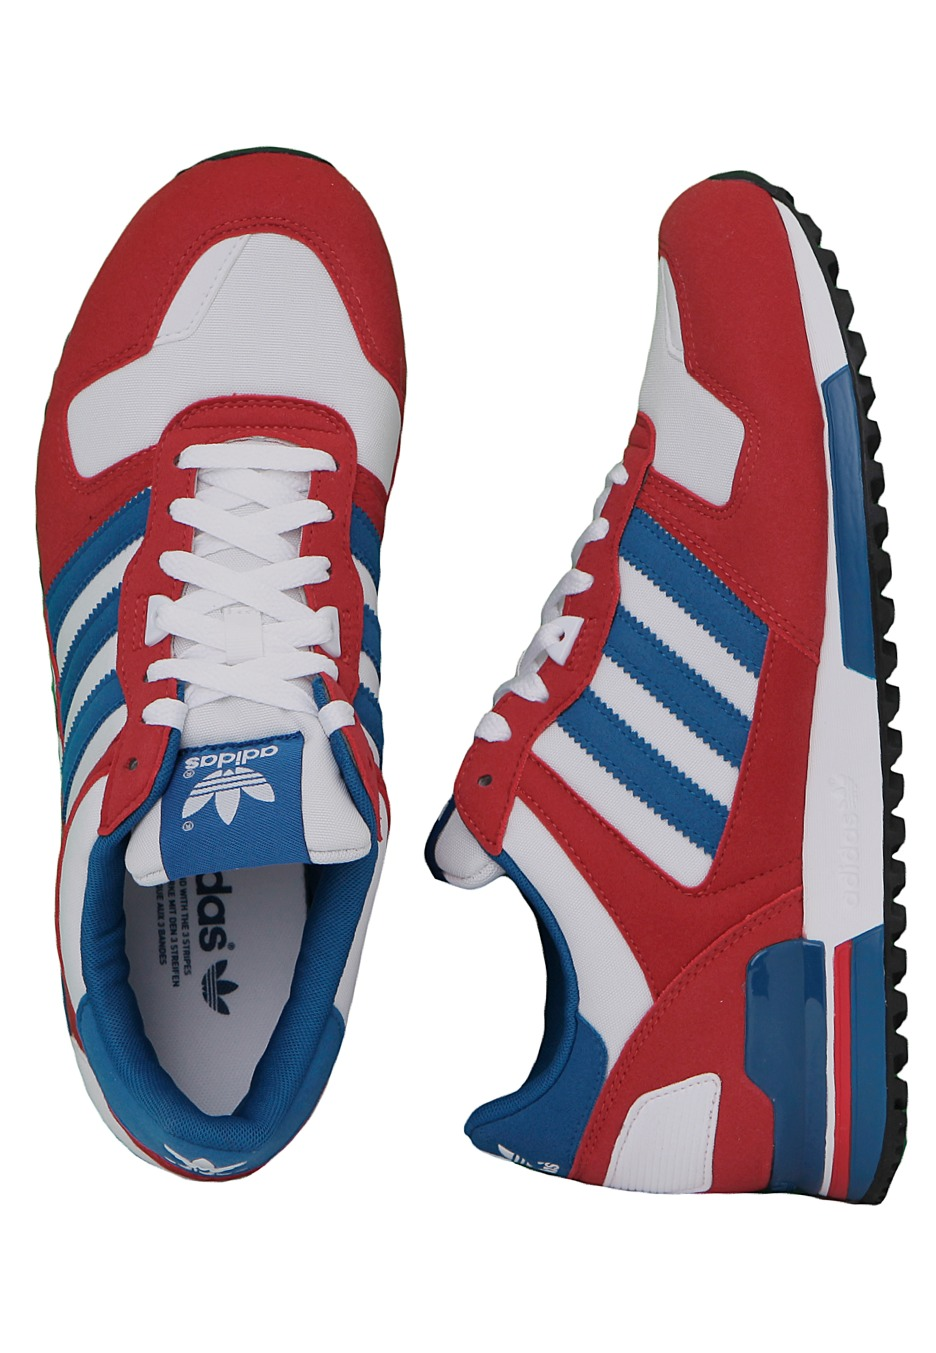 Reddark 700 Adidas Shoes Impericon Whiteuniversity Zx Royal 3Lq5cR4Aj